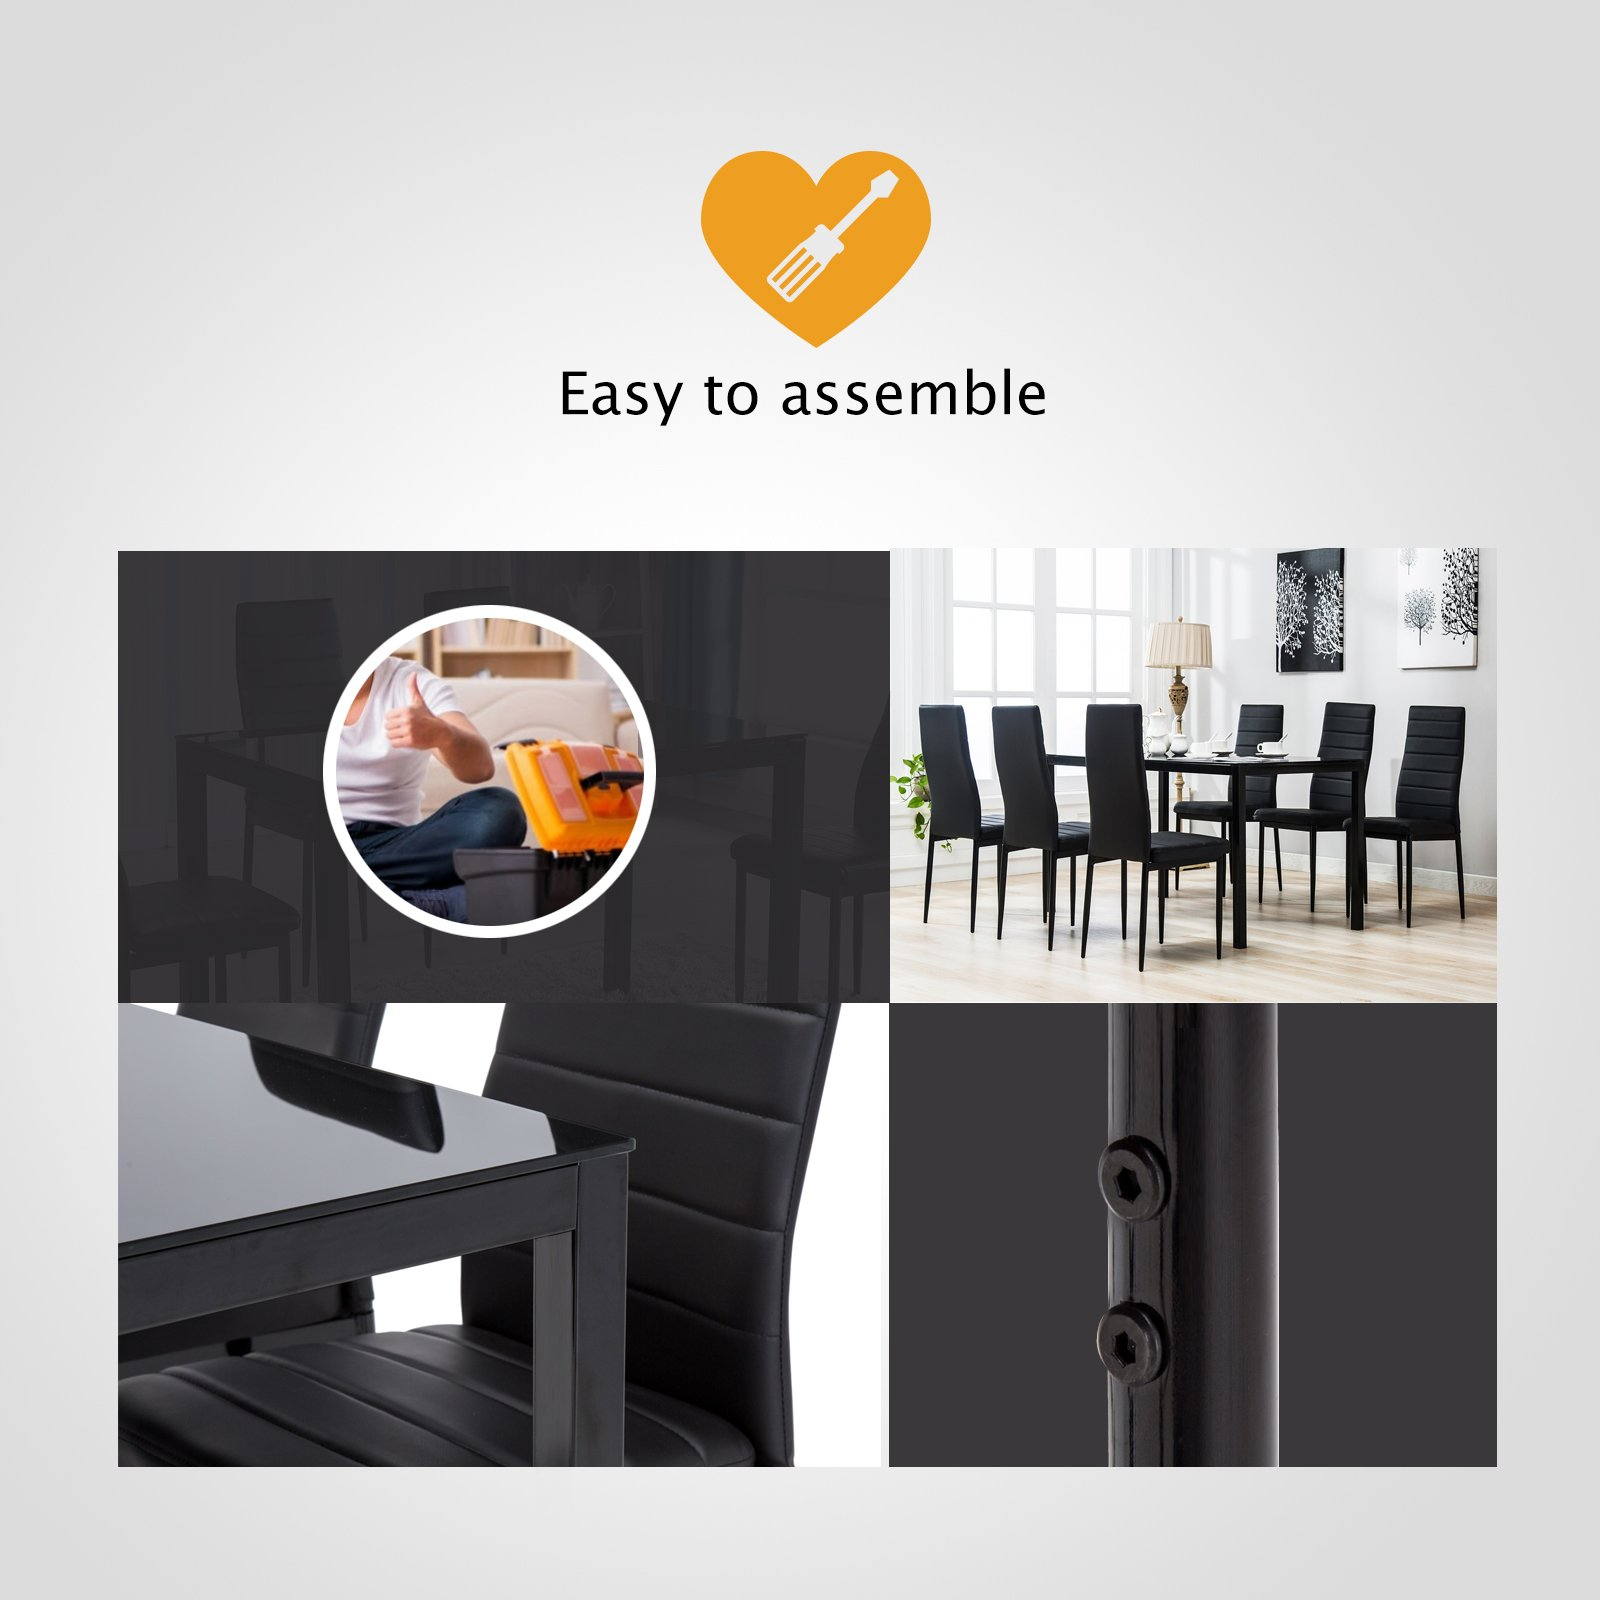 Mecor 7 Piece Kitchen Dining Set, Glass Top Table with 6 Leather Chairs Breakfast Furniture,Black by Mecor (Image #7)